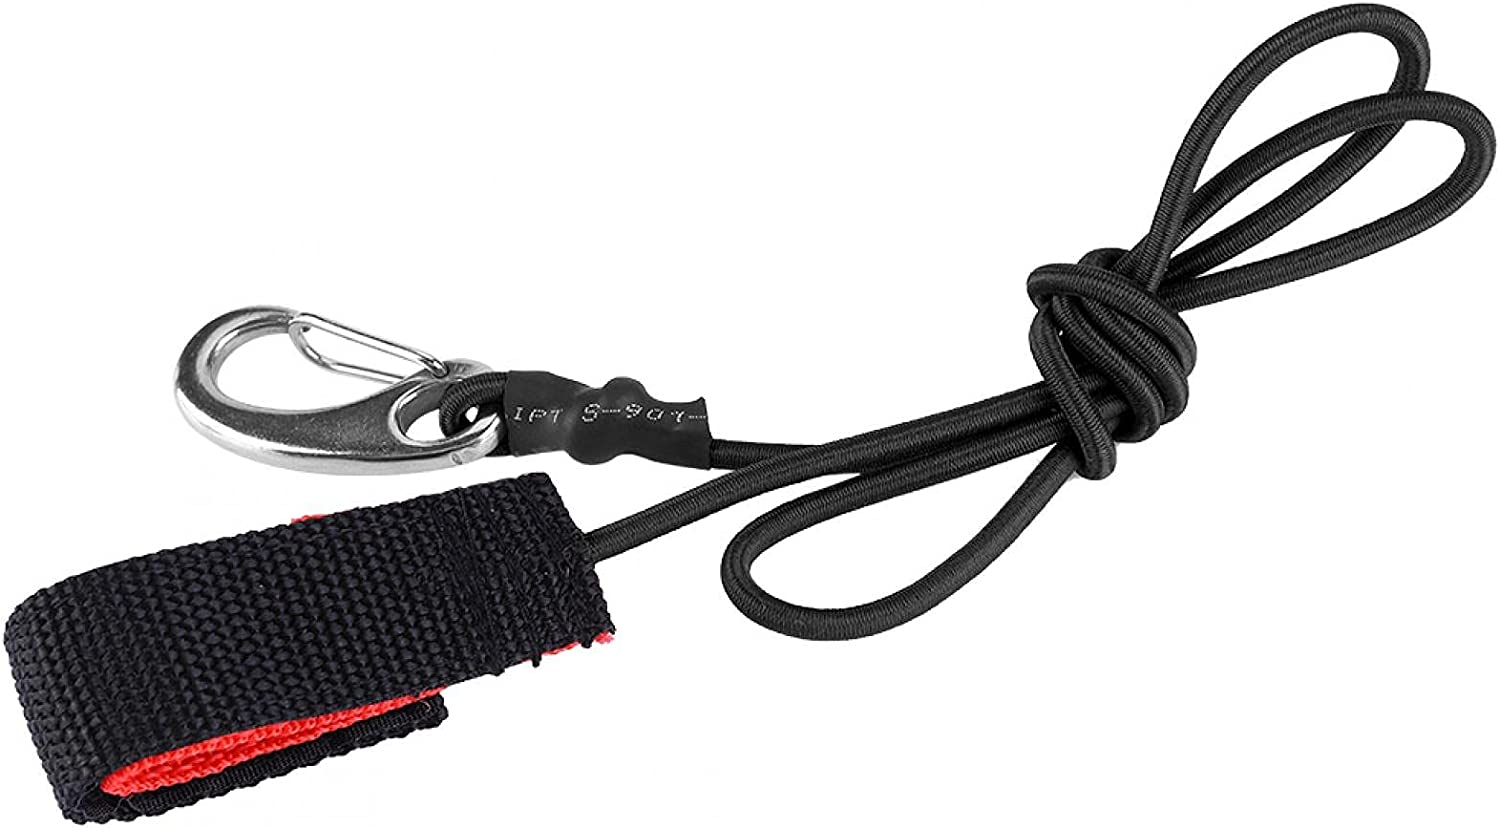 KUIDAMOS Paddling Safety Leash Heavy Le Paddle Lightweight Sale Special Price Max 76% OFF Duty